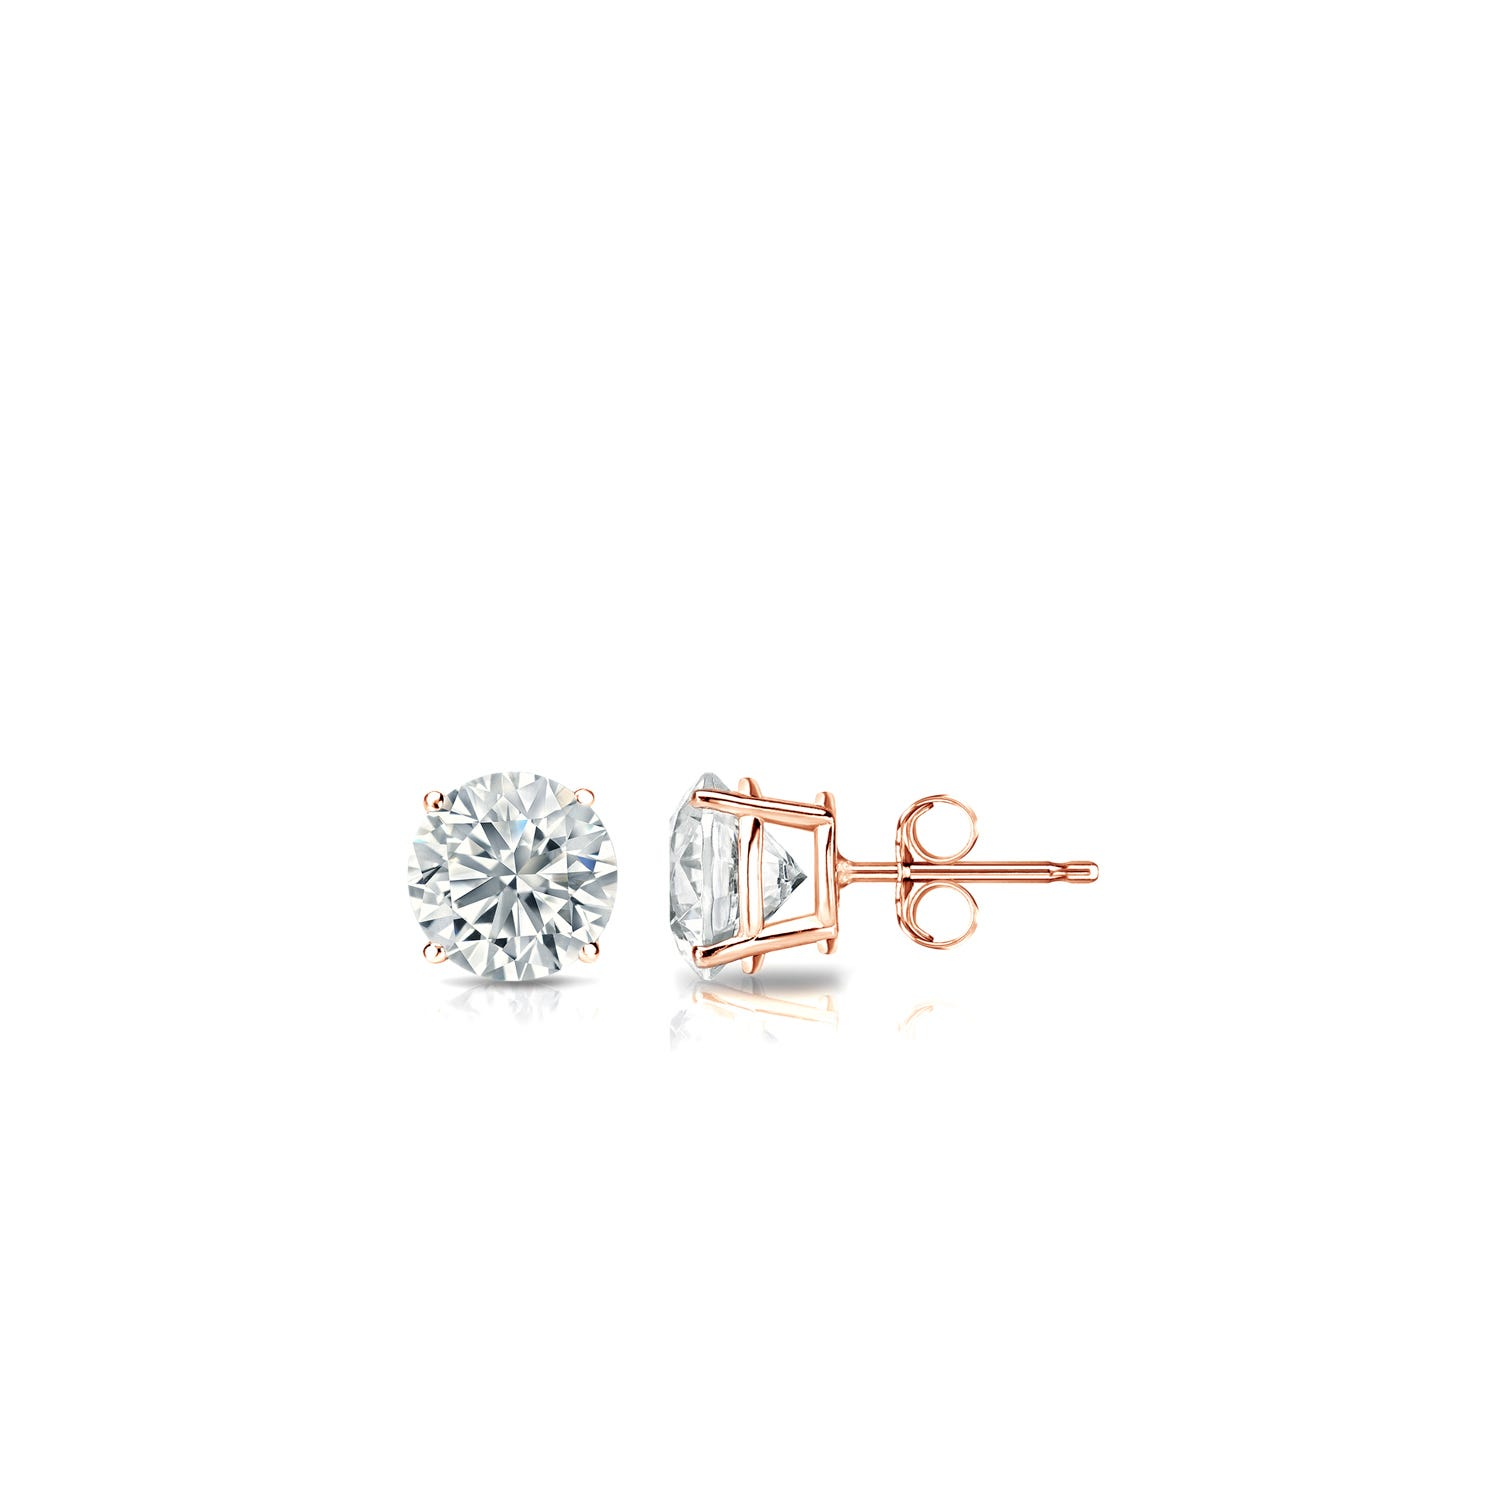 Diamond 1/6ctw. Round Solitaire Stud Earrings (I-J, SI2) 14k Rose Gold